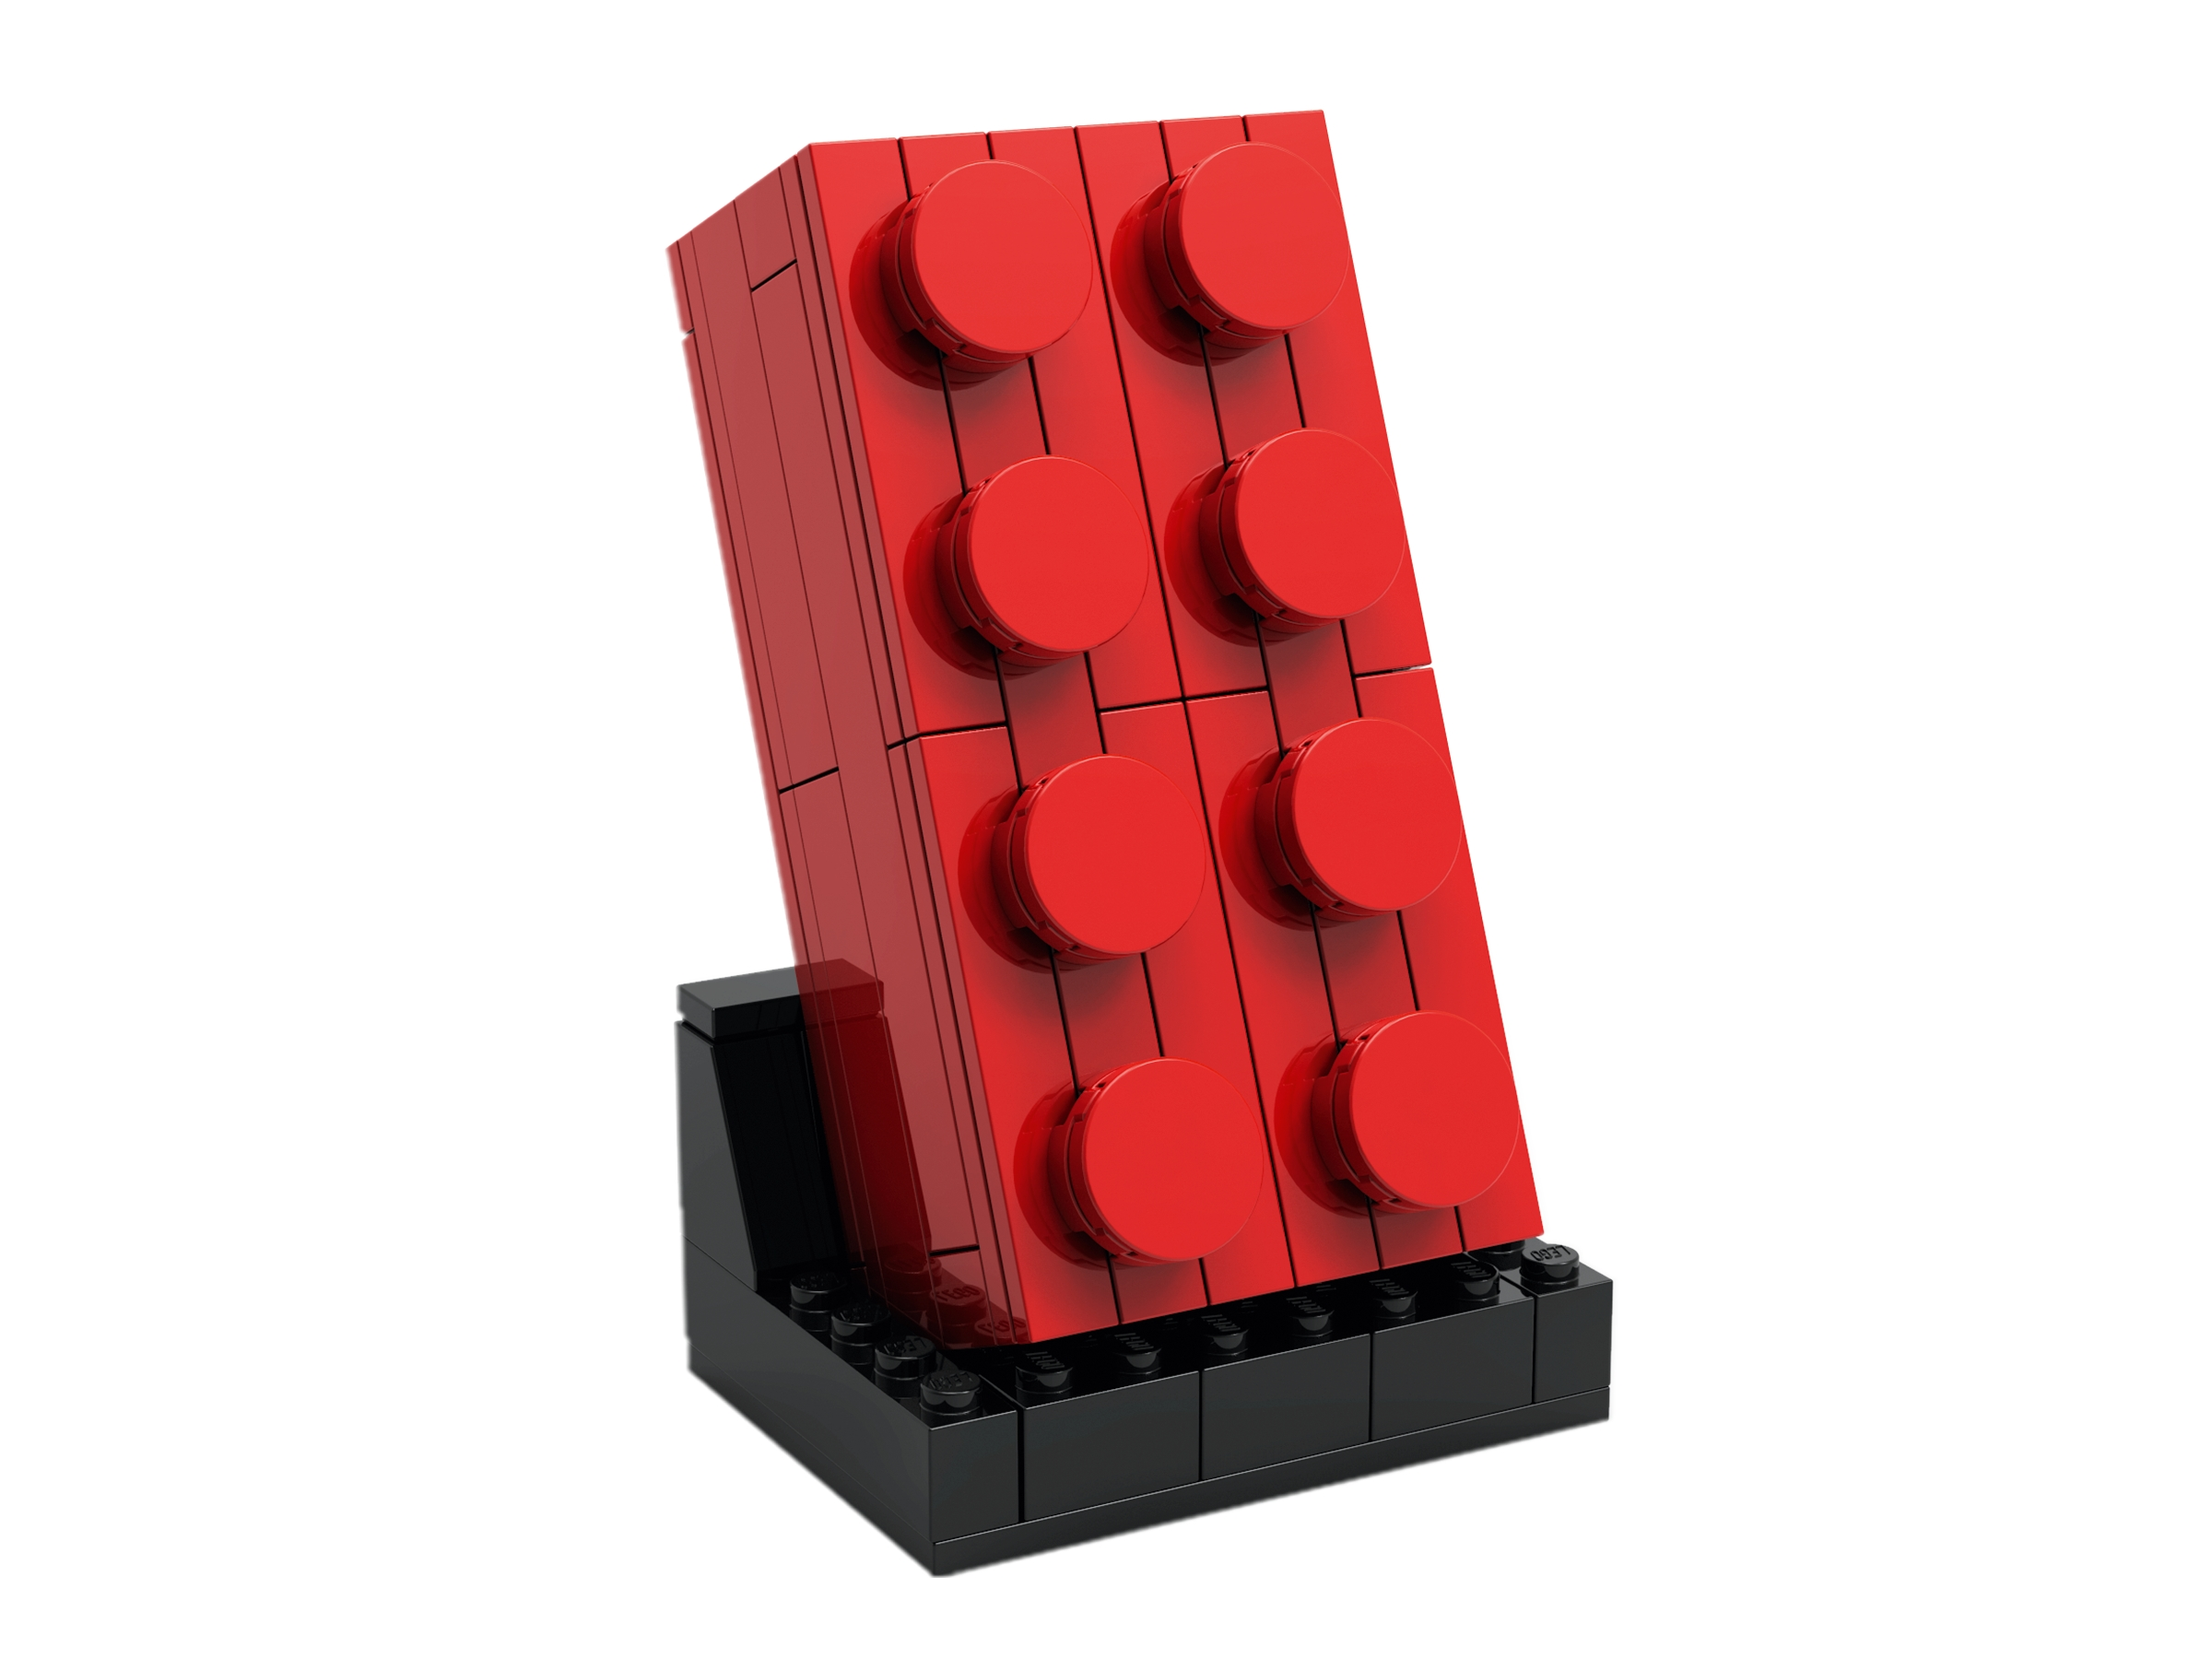 Lego 8  briques rouges 8 red bricks 1 x 4